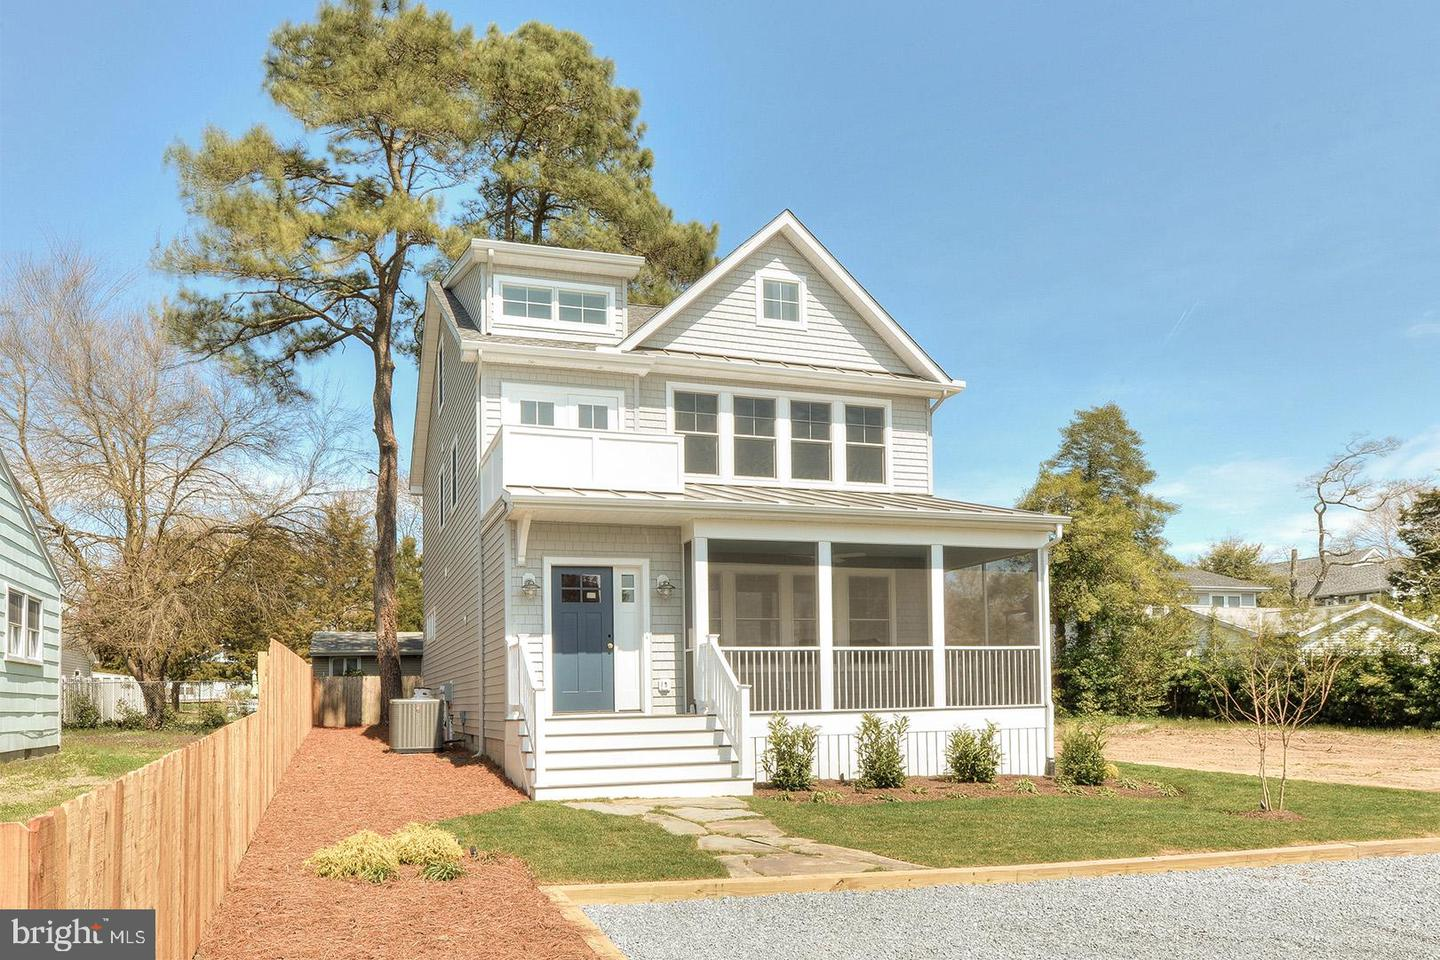 DESU138084-301632587152-2019-11-20-11-03-09 Sold Listings - Rehoboth Beach Real Estate - Bryce Lingo and Shaun Tull REALTORS, Rehoboth Beach, Delaware